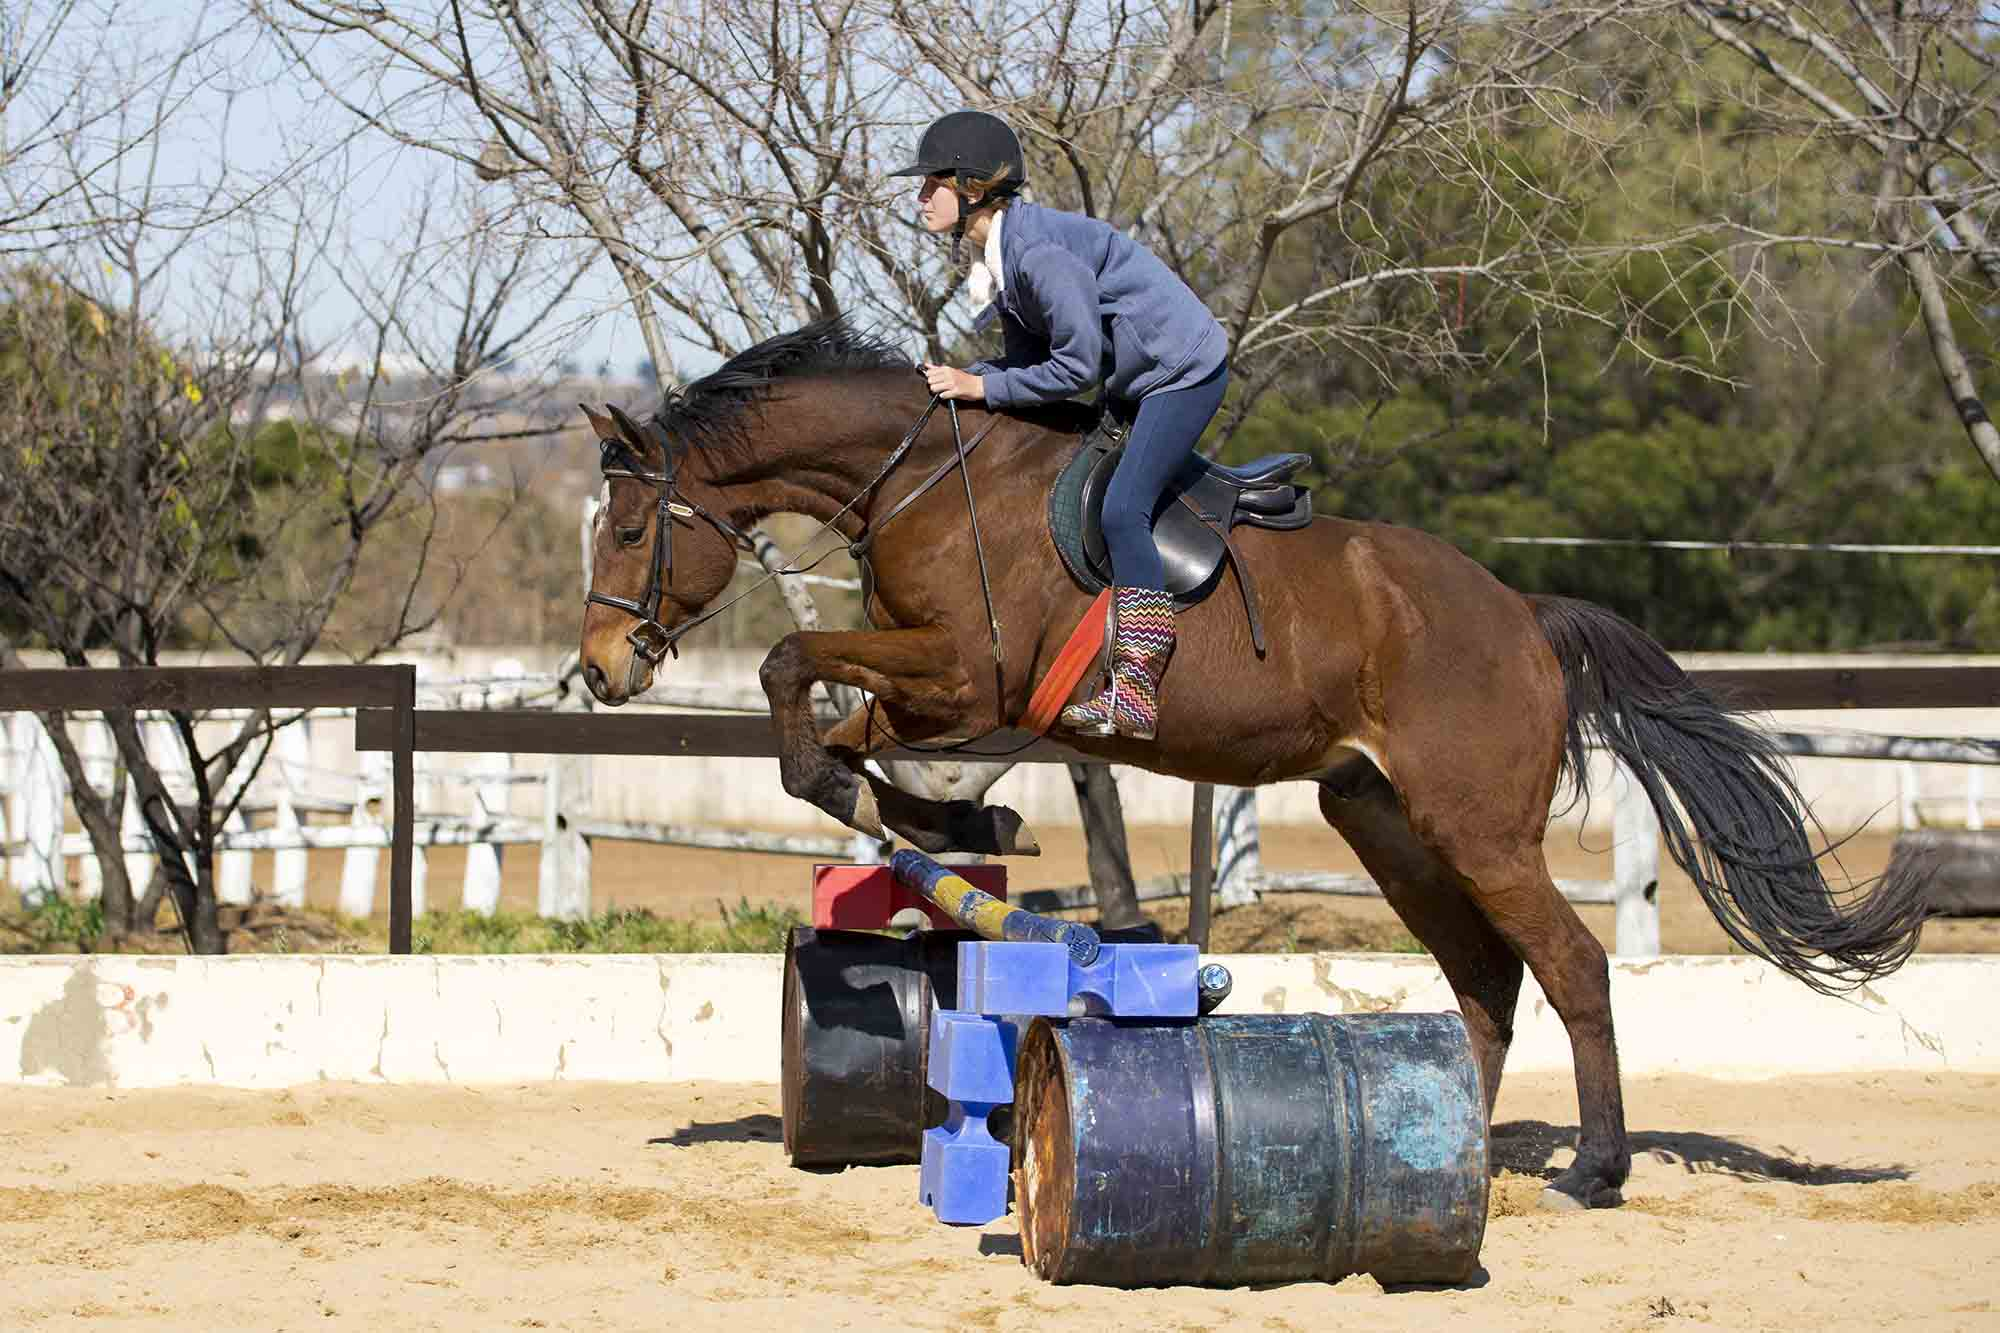 Capriole Stables riding lessons near Midstream and Centurion